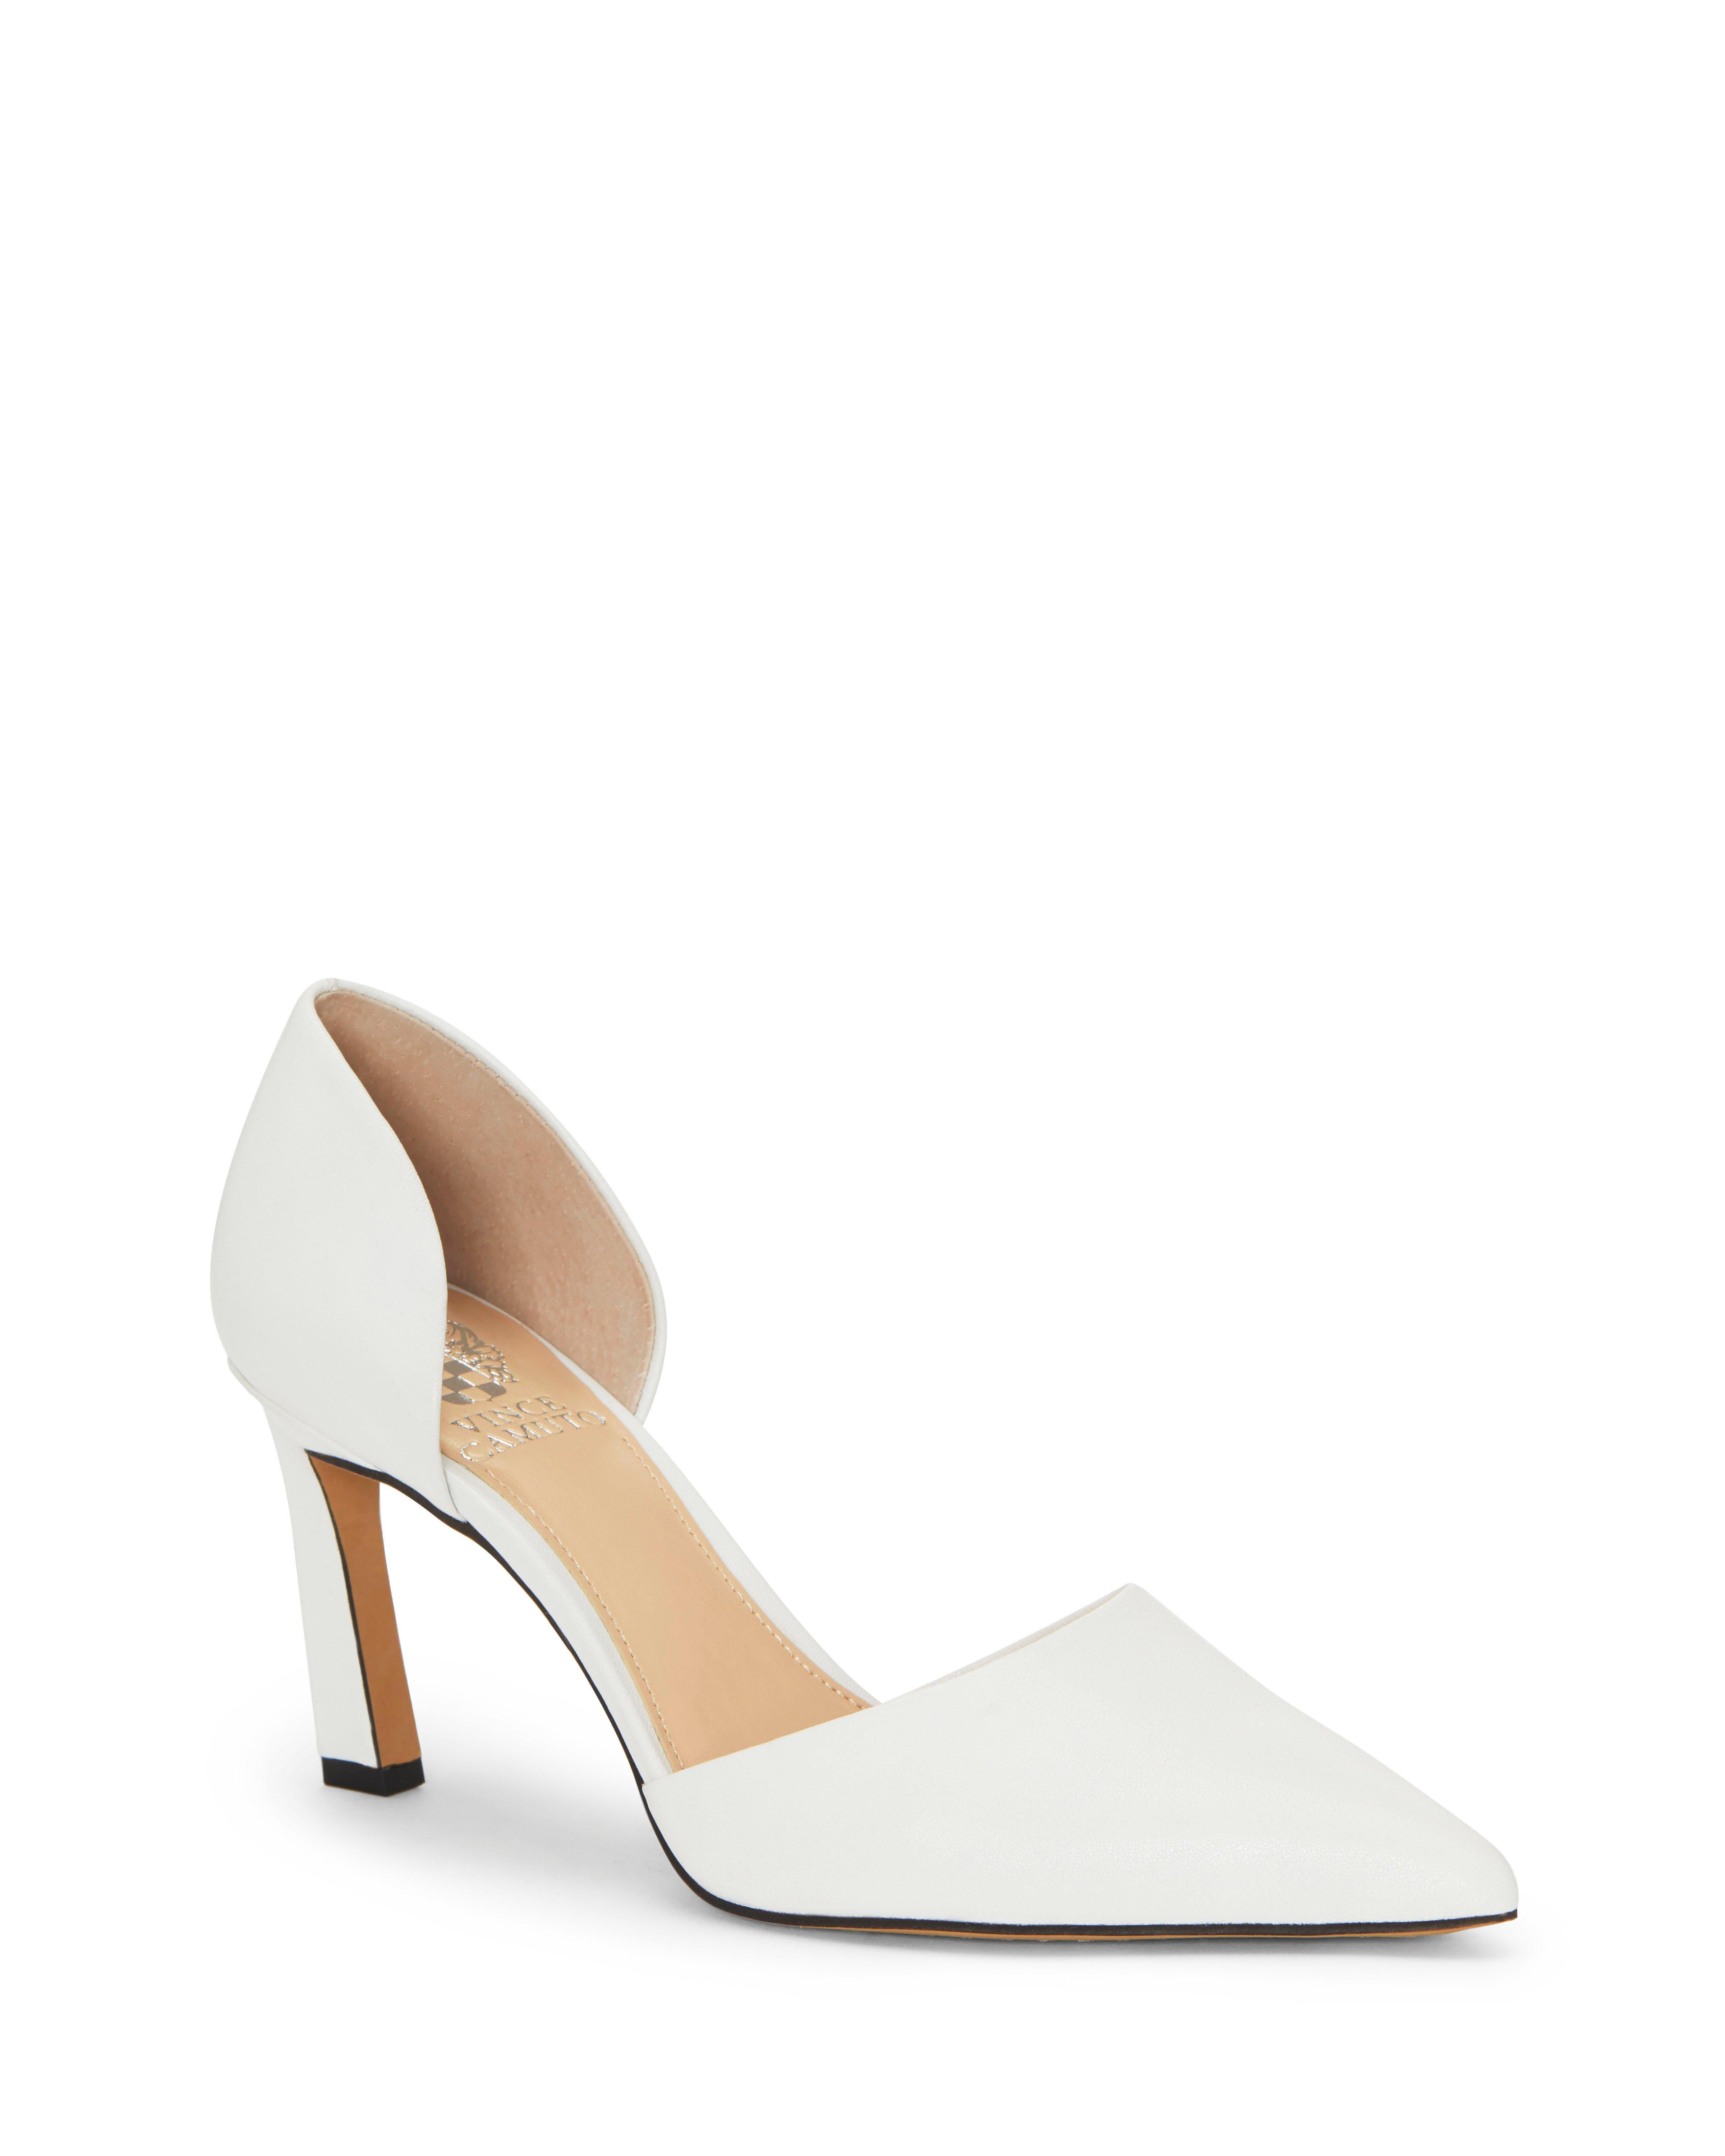 c21bedcef0a Lyst - Vince Camuto Renny – D orsay Pump